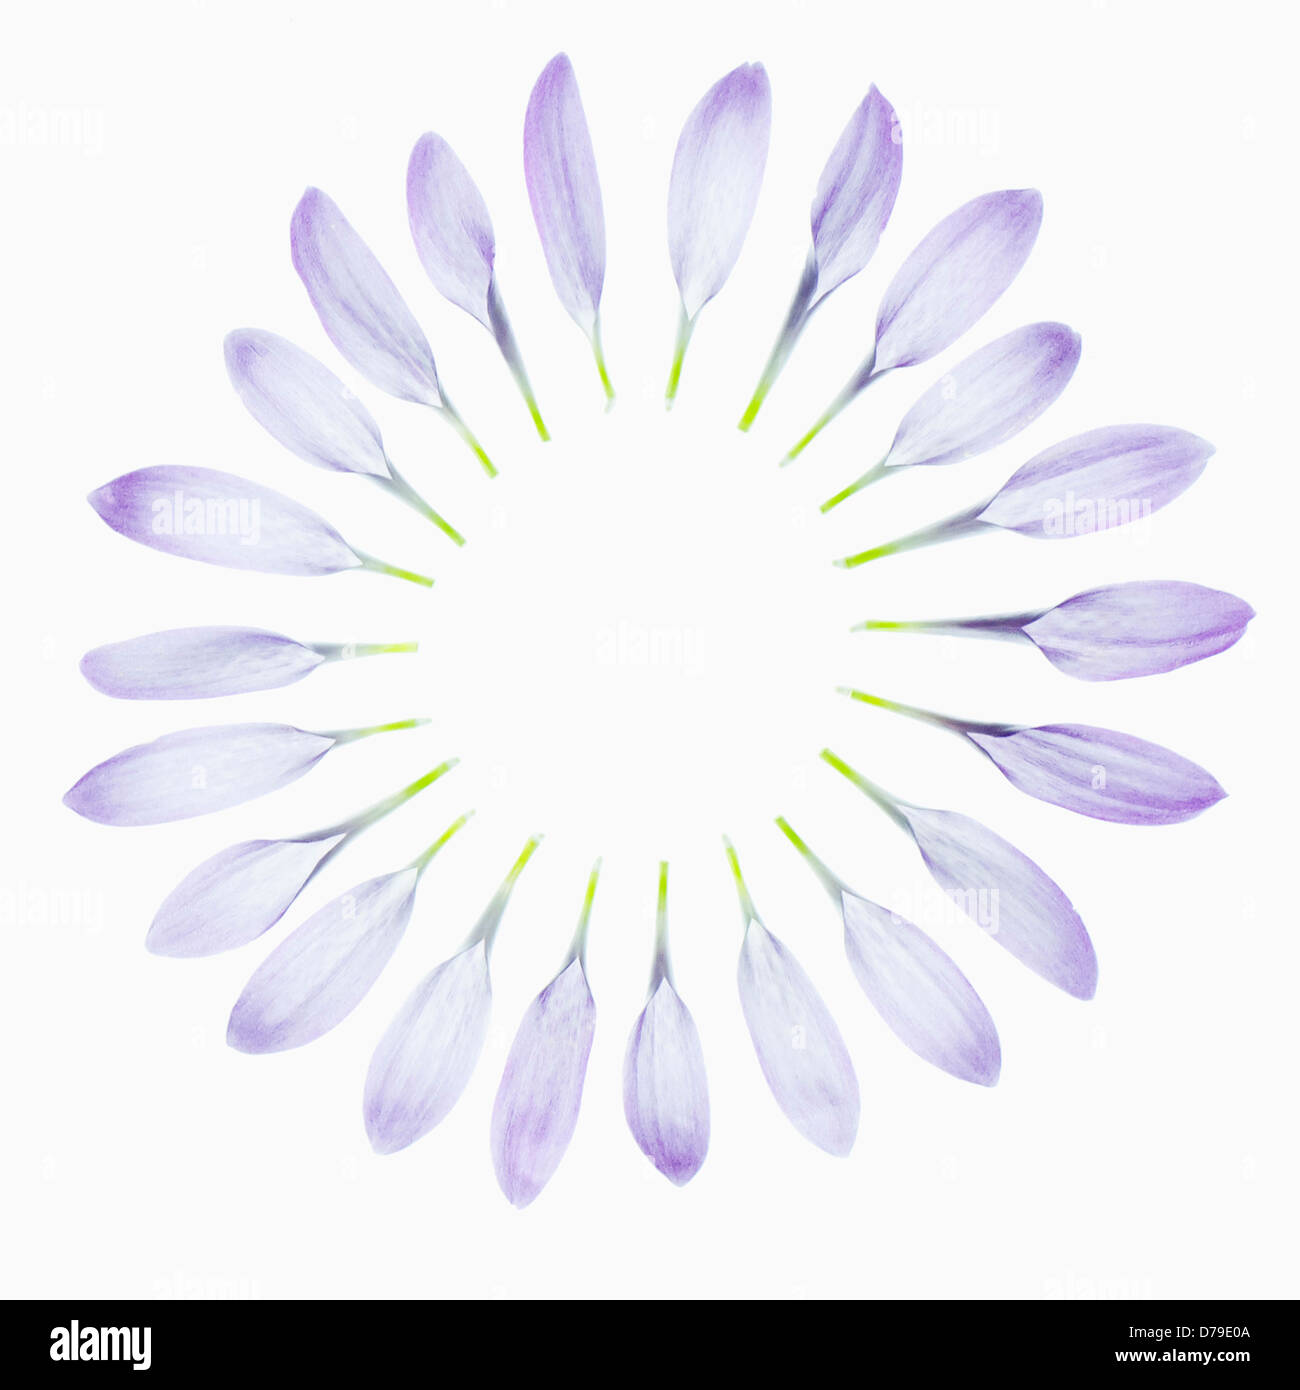 Chrysanthemum cultivar Eleonora Lilac Cremon disbud type. Pale lilac individual petals delicately placed to create - Stock Image